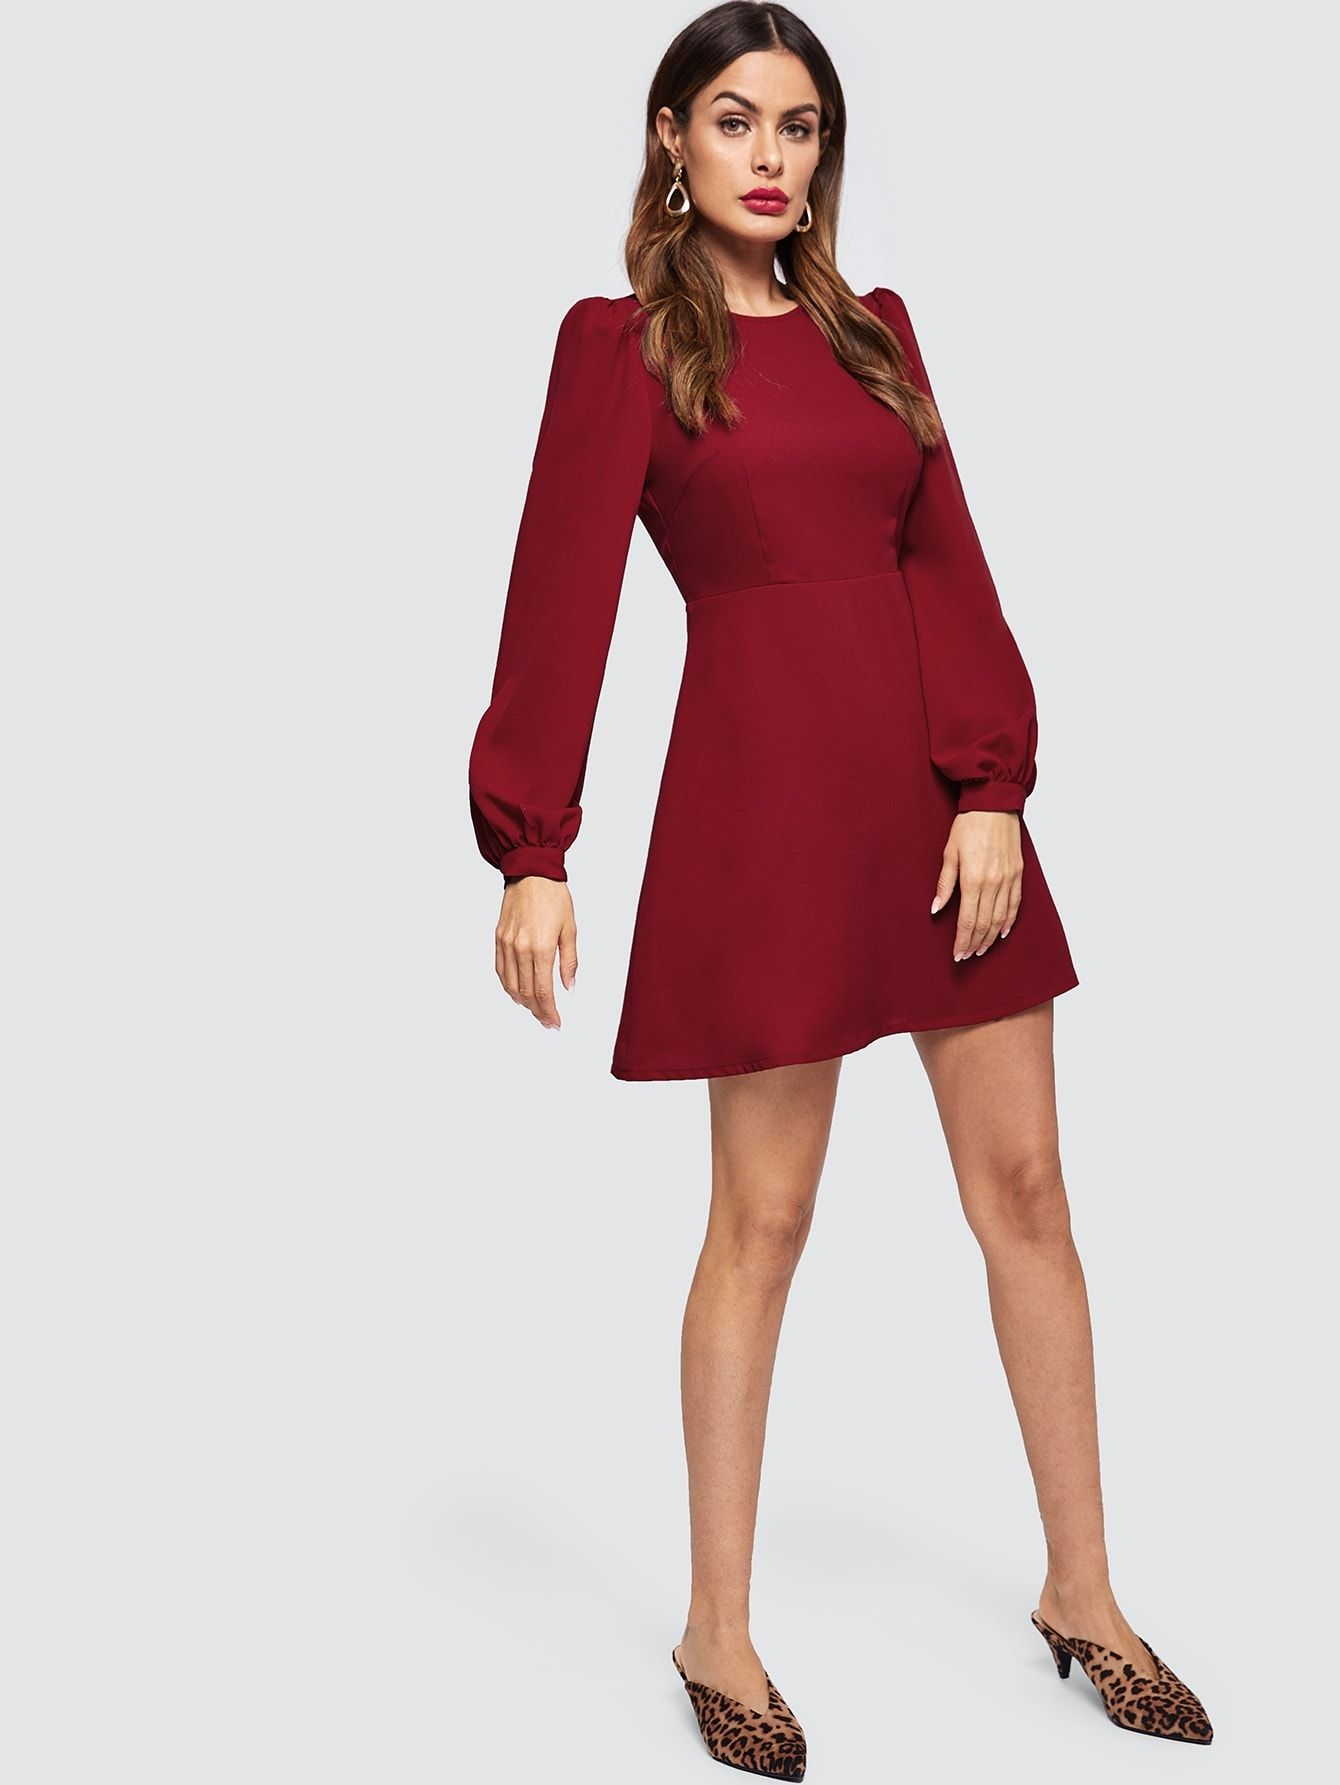 f99bda1b5c Casual Plain Fit and Flare Round Neck Long Sleeve High Waist Burgundy Short  Length Bishop Sleeve Fit   Flare Dress